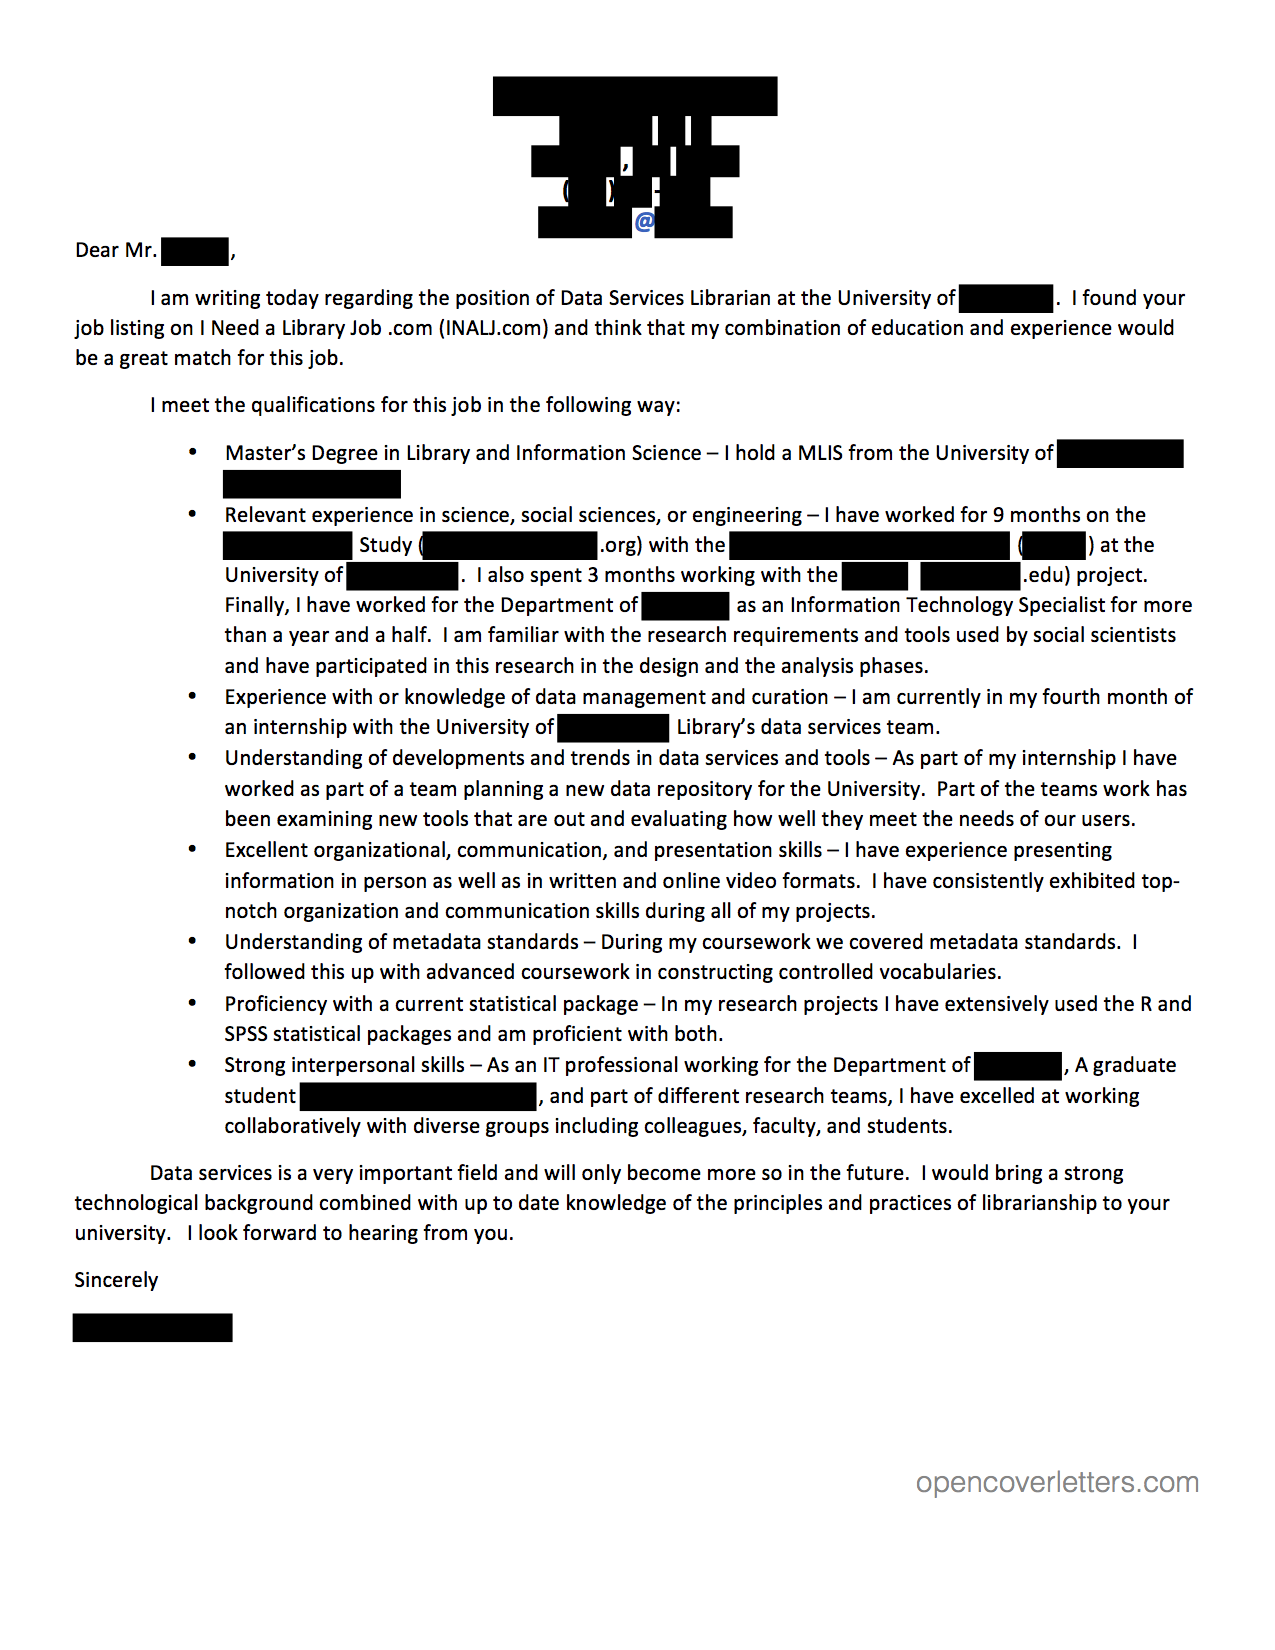 metadata | Open Cover Letters